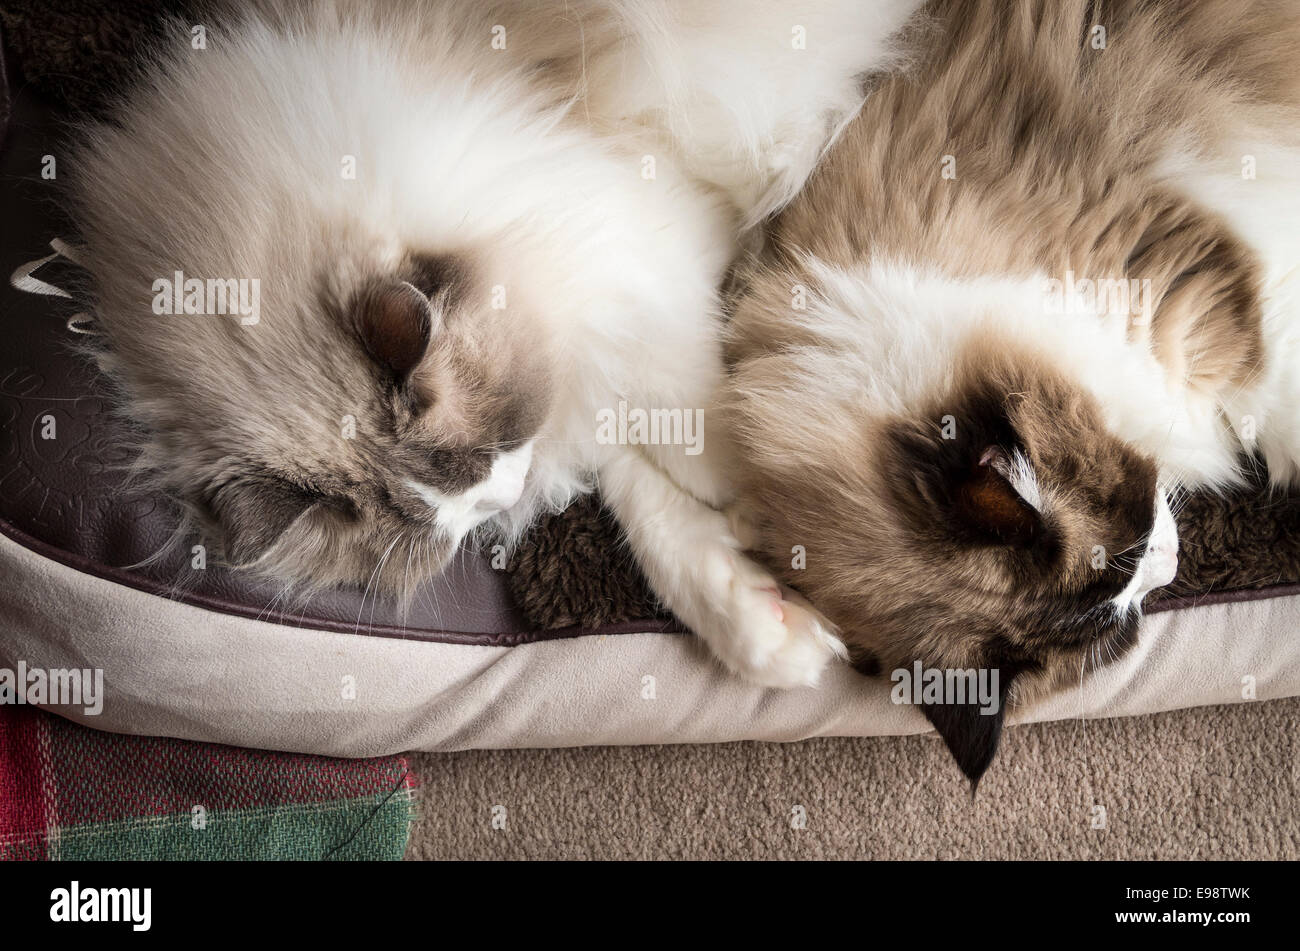 Two Ragdoll cats asleep on a pet bed - Stock Image